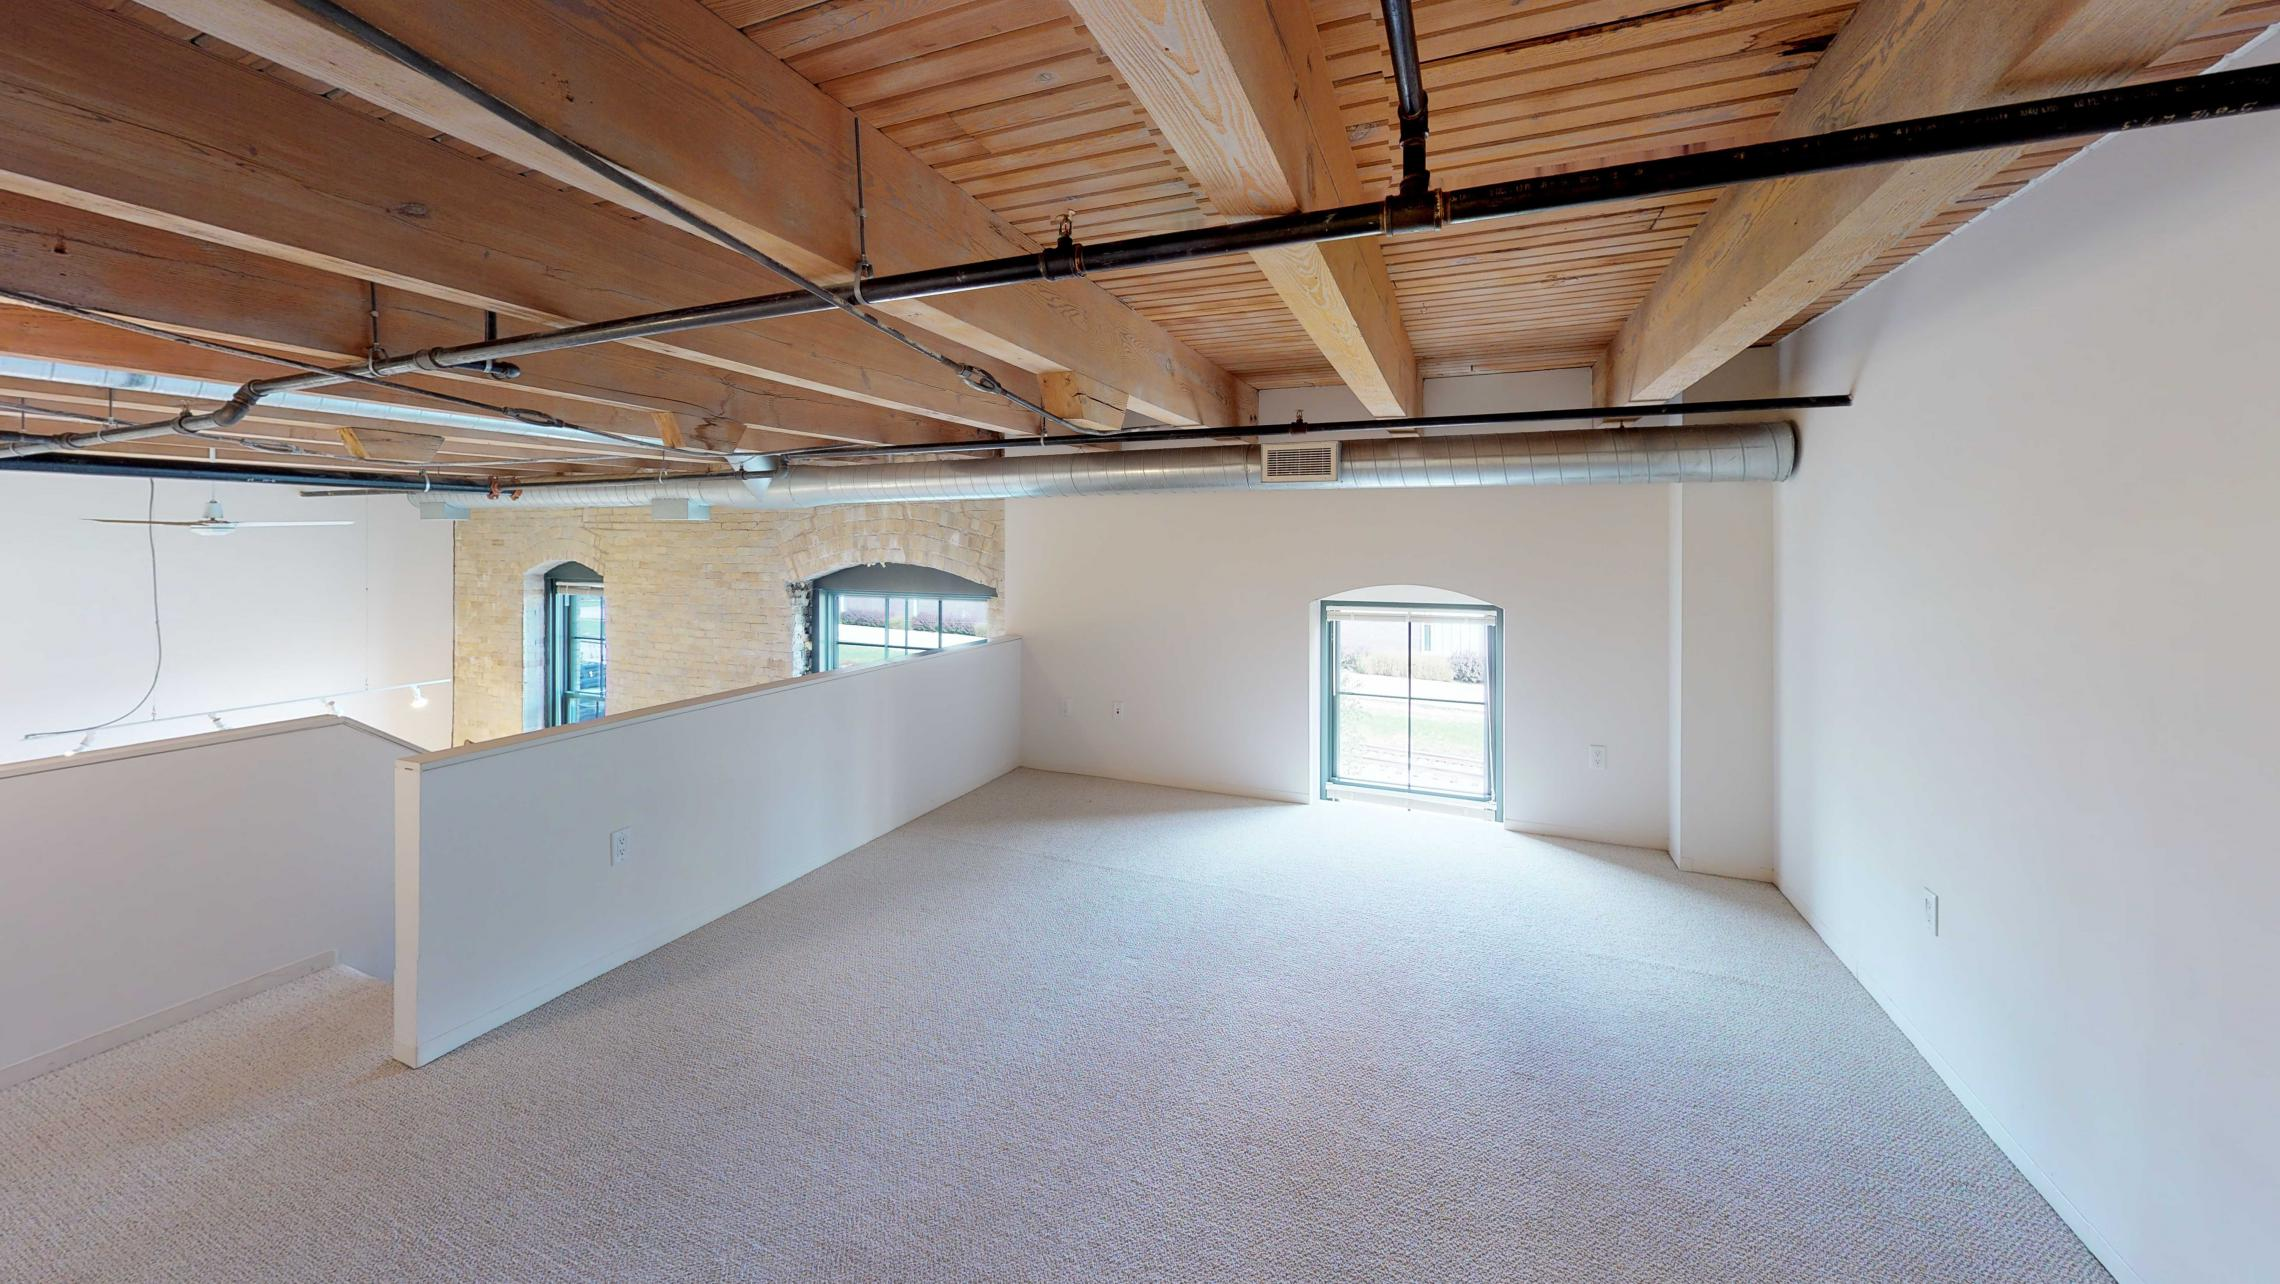 Tobacco-Lofts-E203-Lofted-Two-Bedroom-Downtown-Madison-Balcony-Exposed-Brick-Design-Historic.jpg